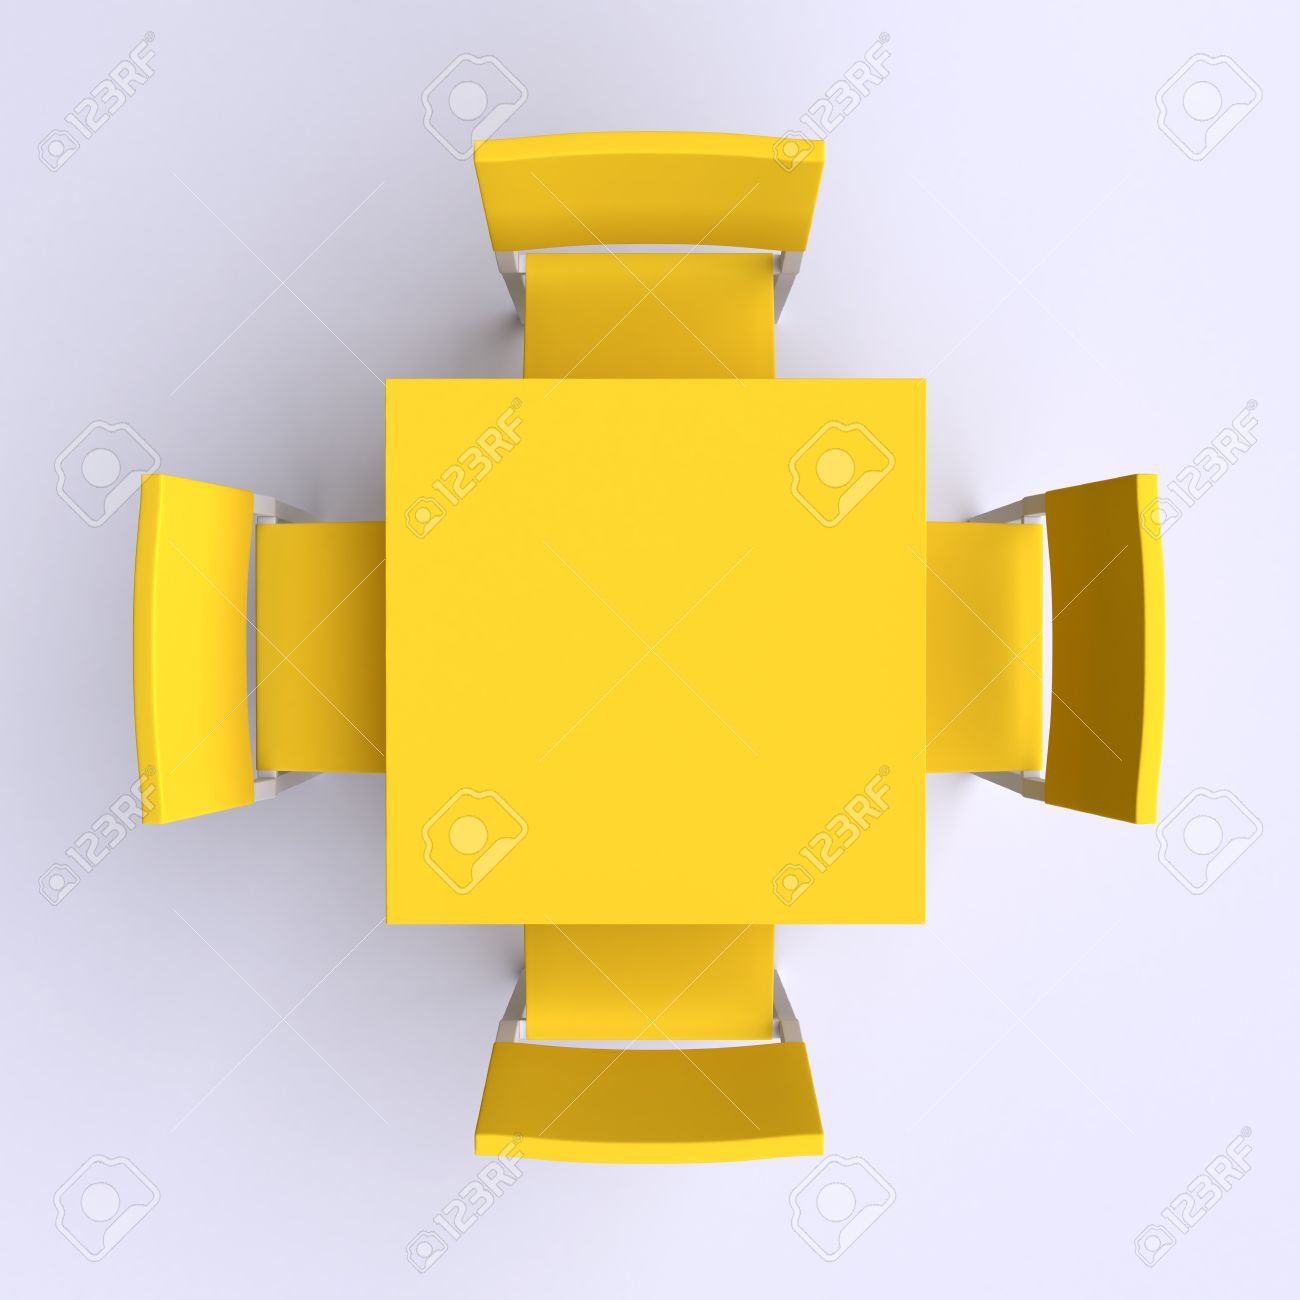 Square Table With Four Chairs Top View 3d Illustration Stock